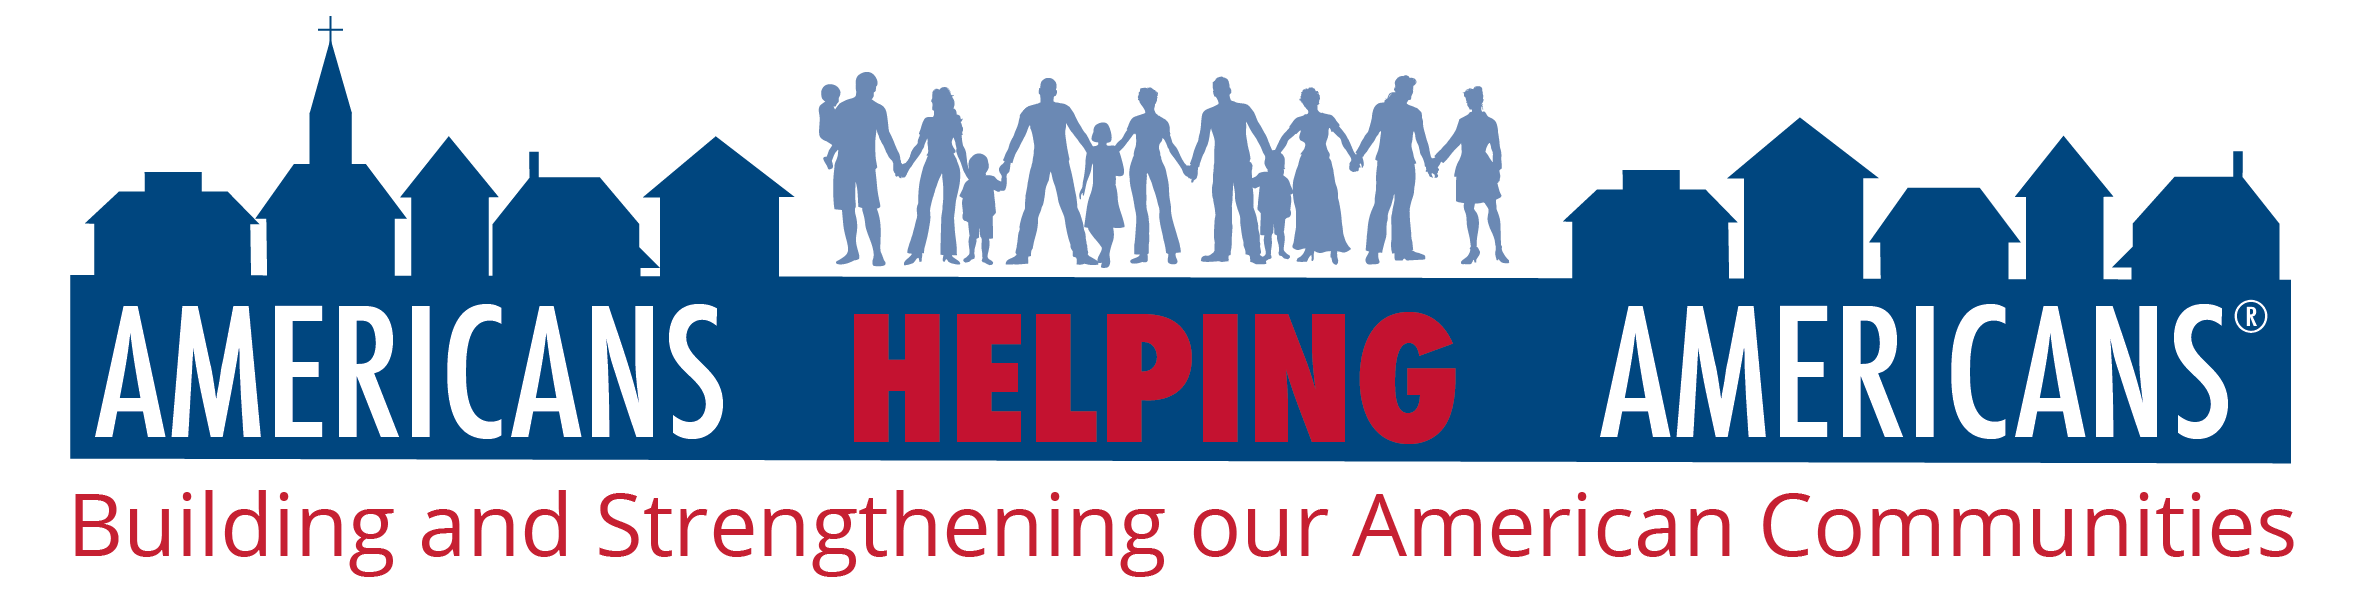 Americans Helping Americans